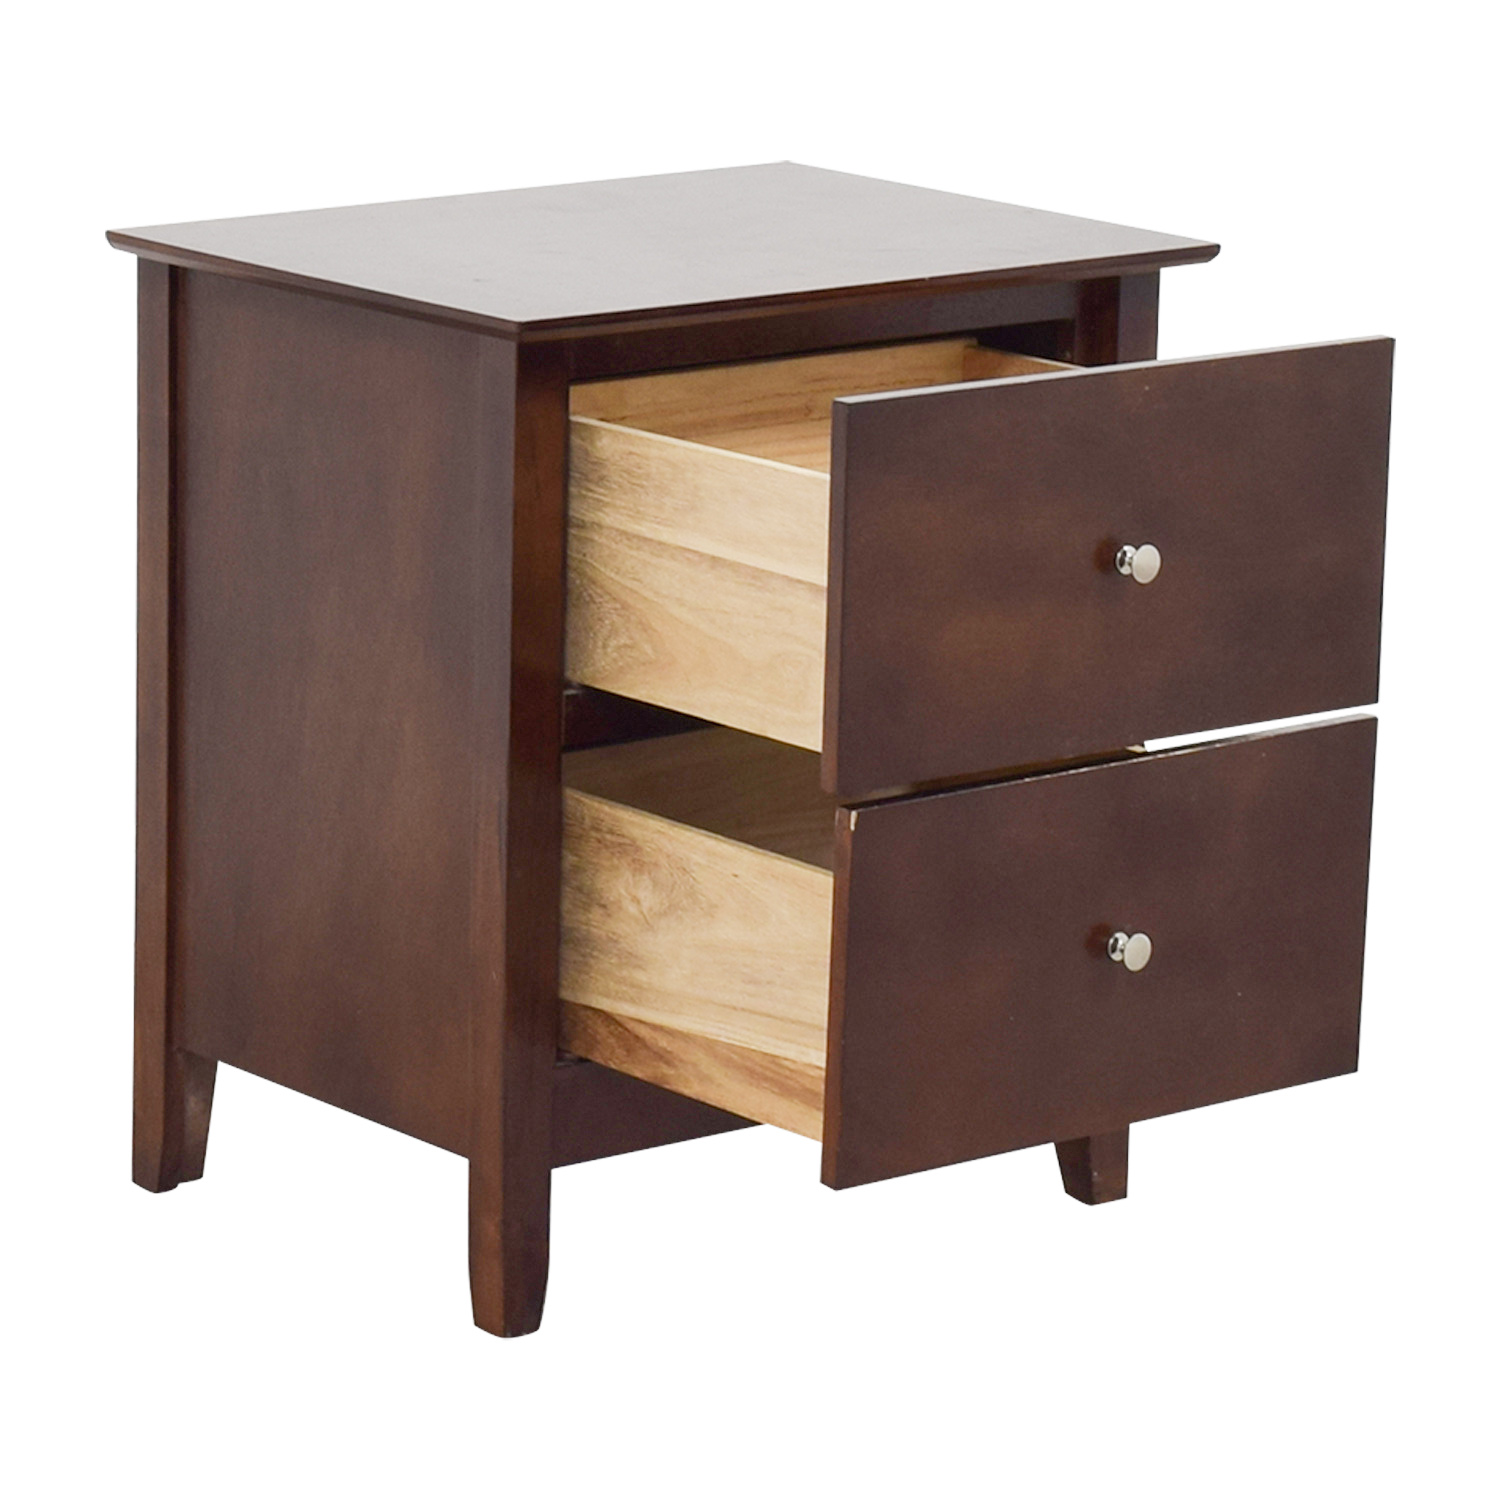 Bobs Discount Furniture Bobs Furniture Two-Drawer Nightstand